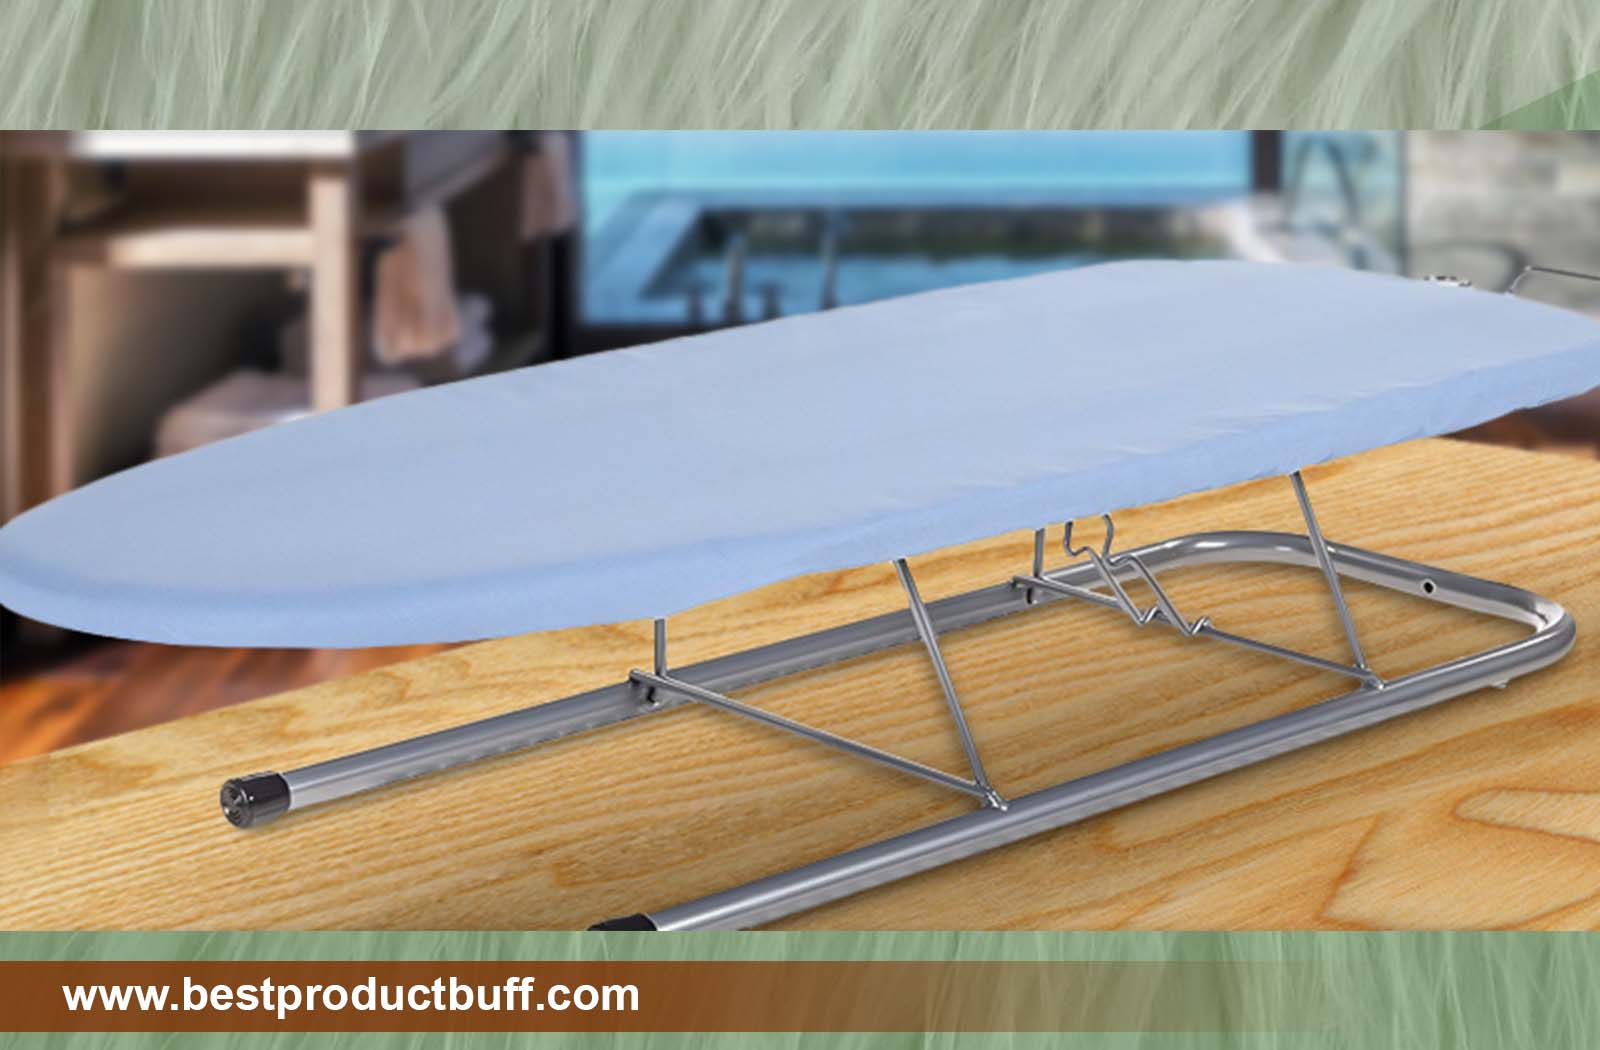 Top 10 Best Tabletop Ironing Board Cover 2020 Review Best Product Buff